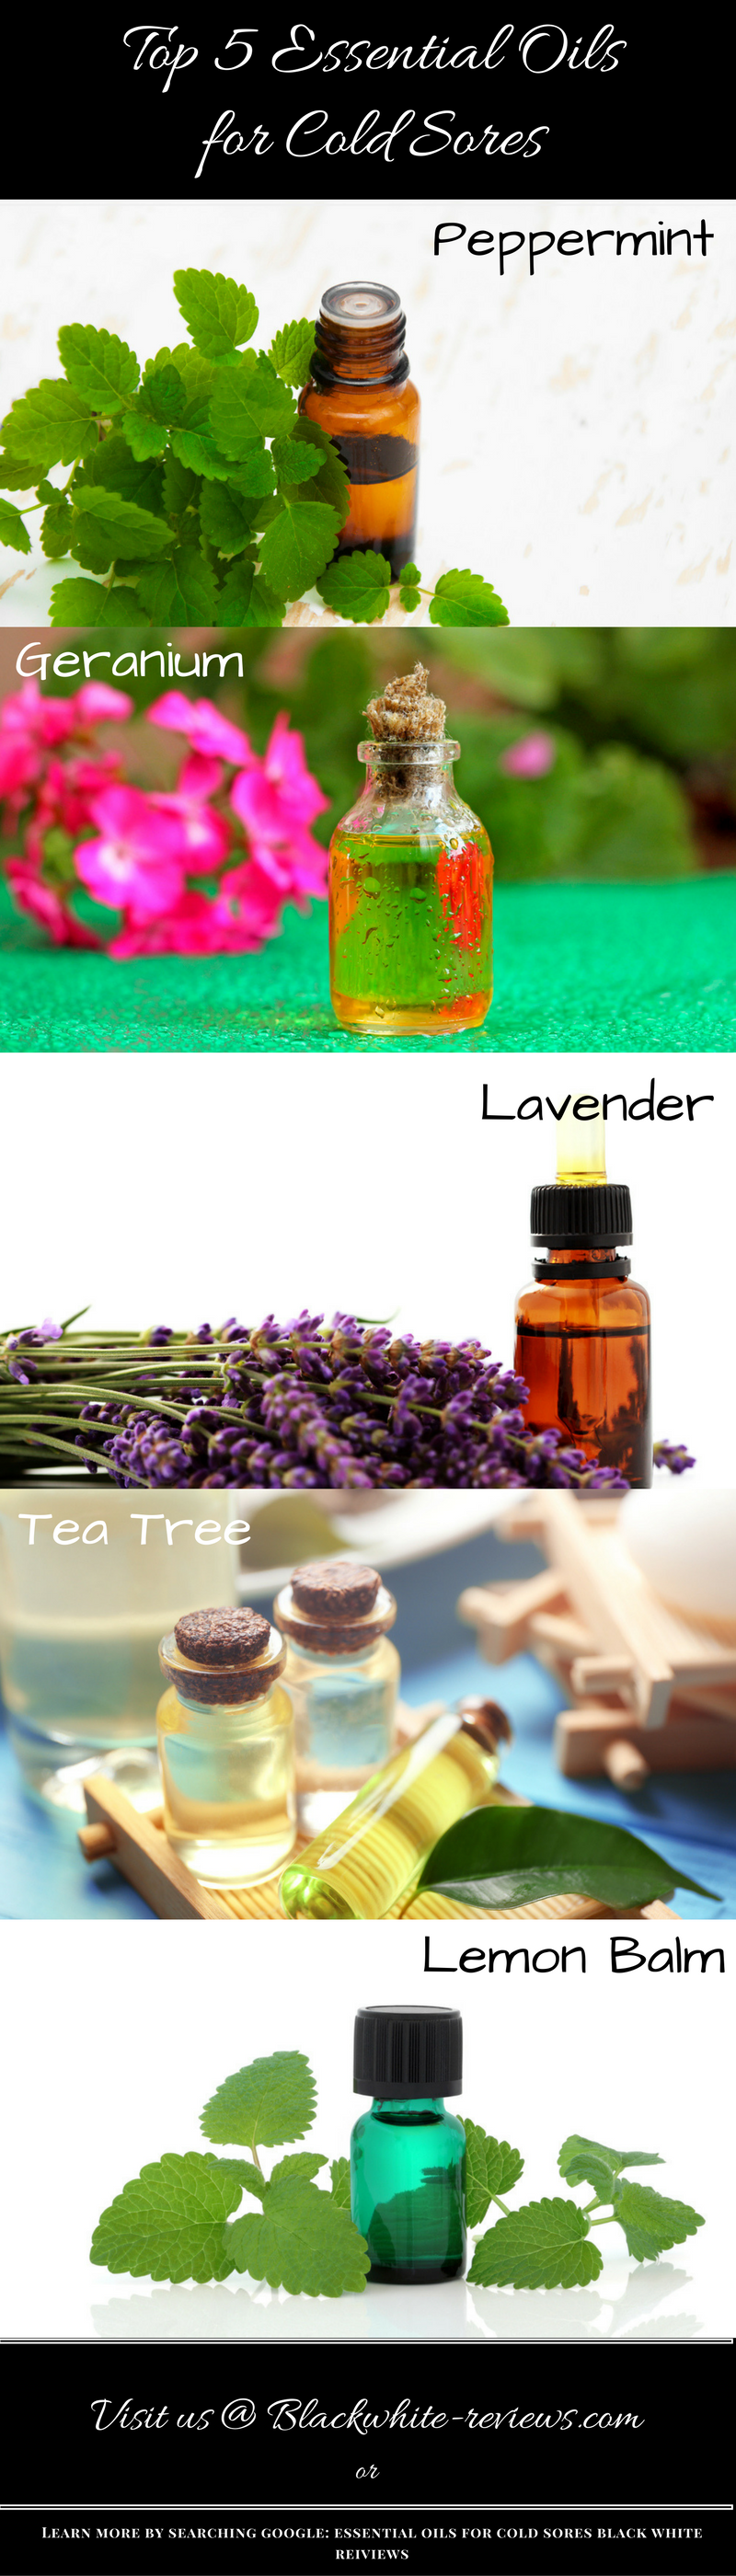 essential oils for cold sores - infographic